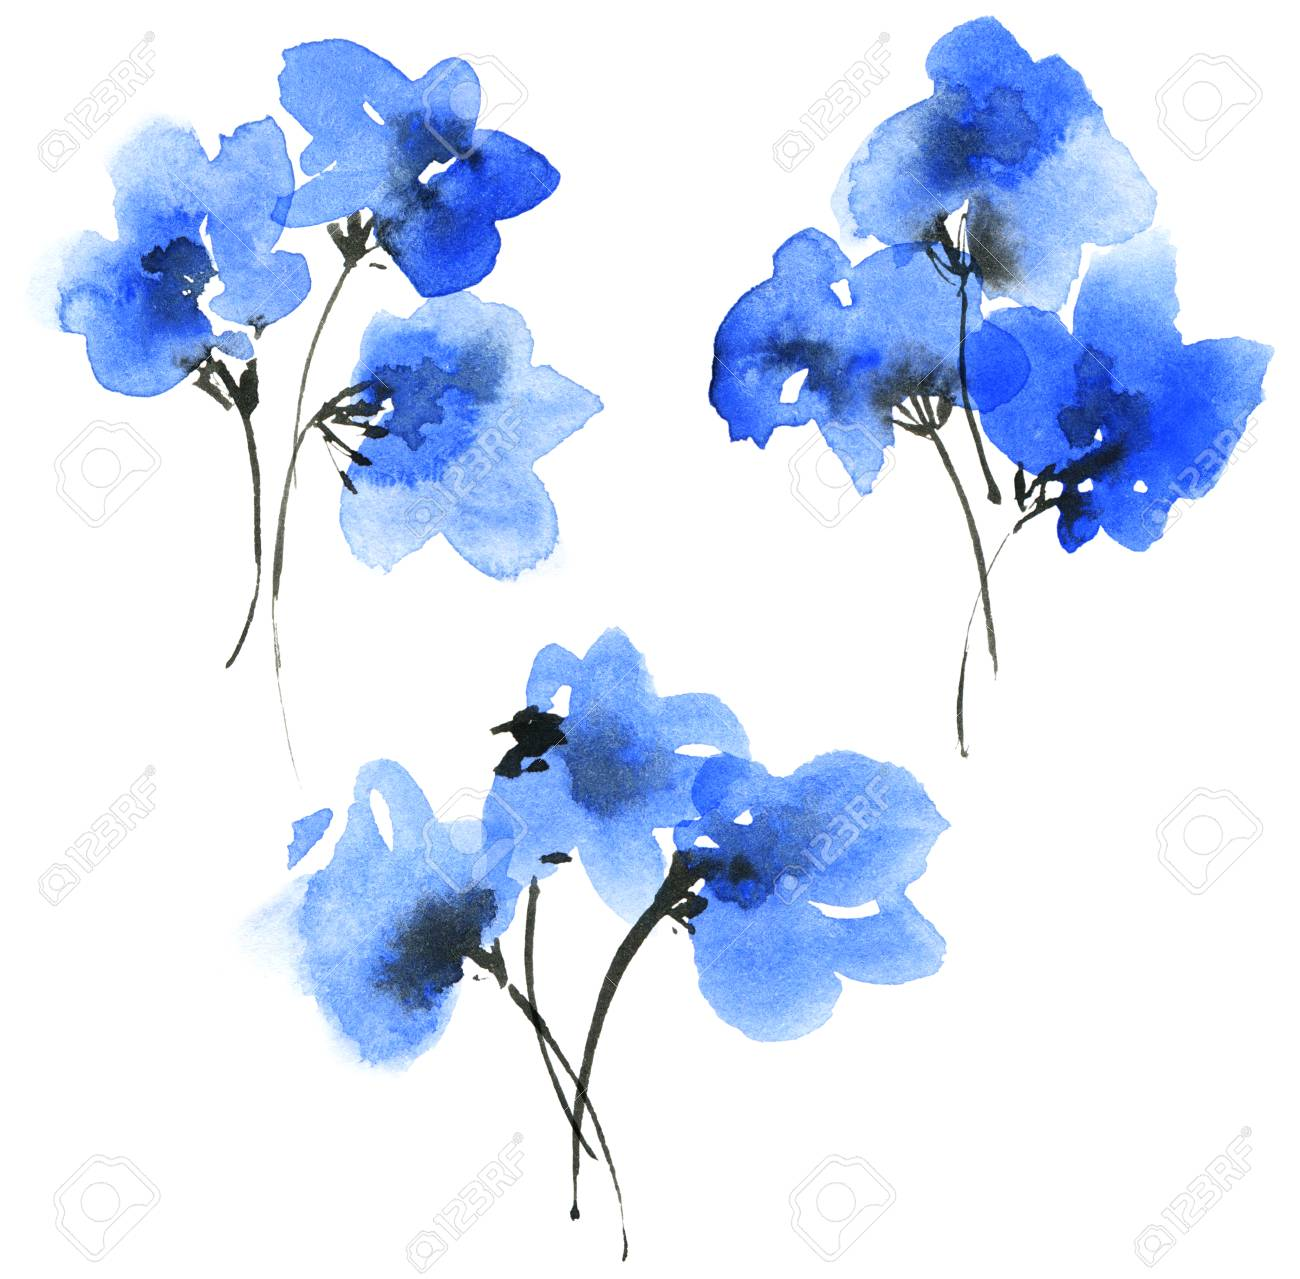 Watercolor And Ink Painted Blue Flowers Bouquets Oriental Traditional Stock Photo Picture And Royalty Free Image Image 123974951